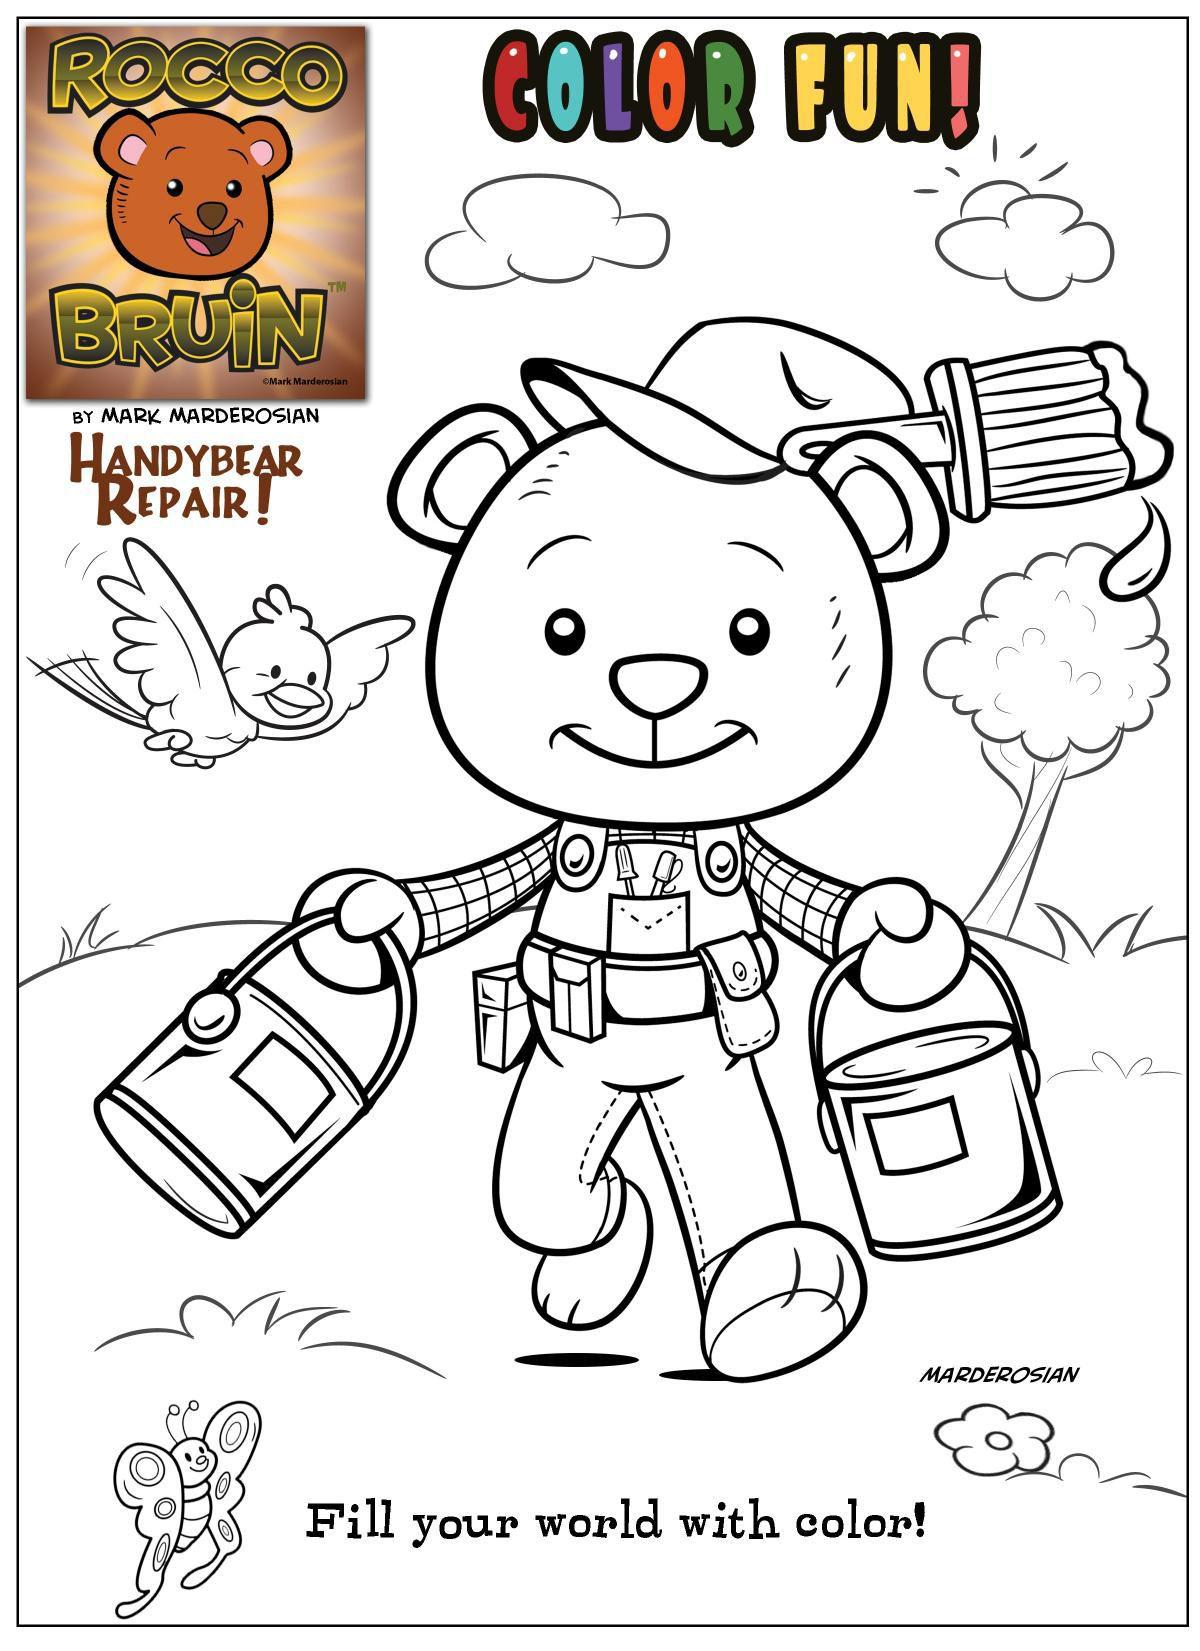 Coloring with Rocco Bruin